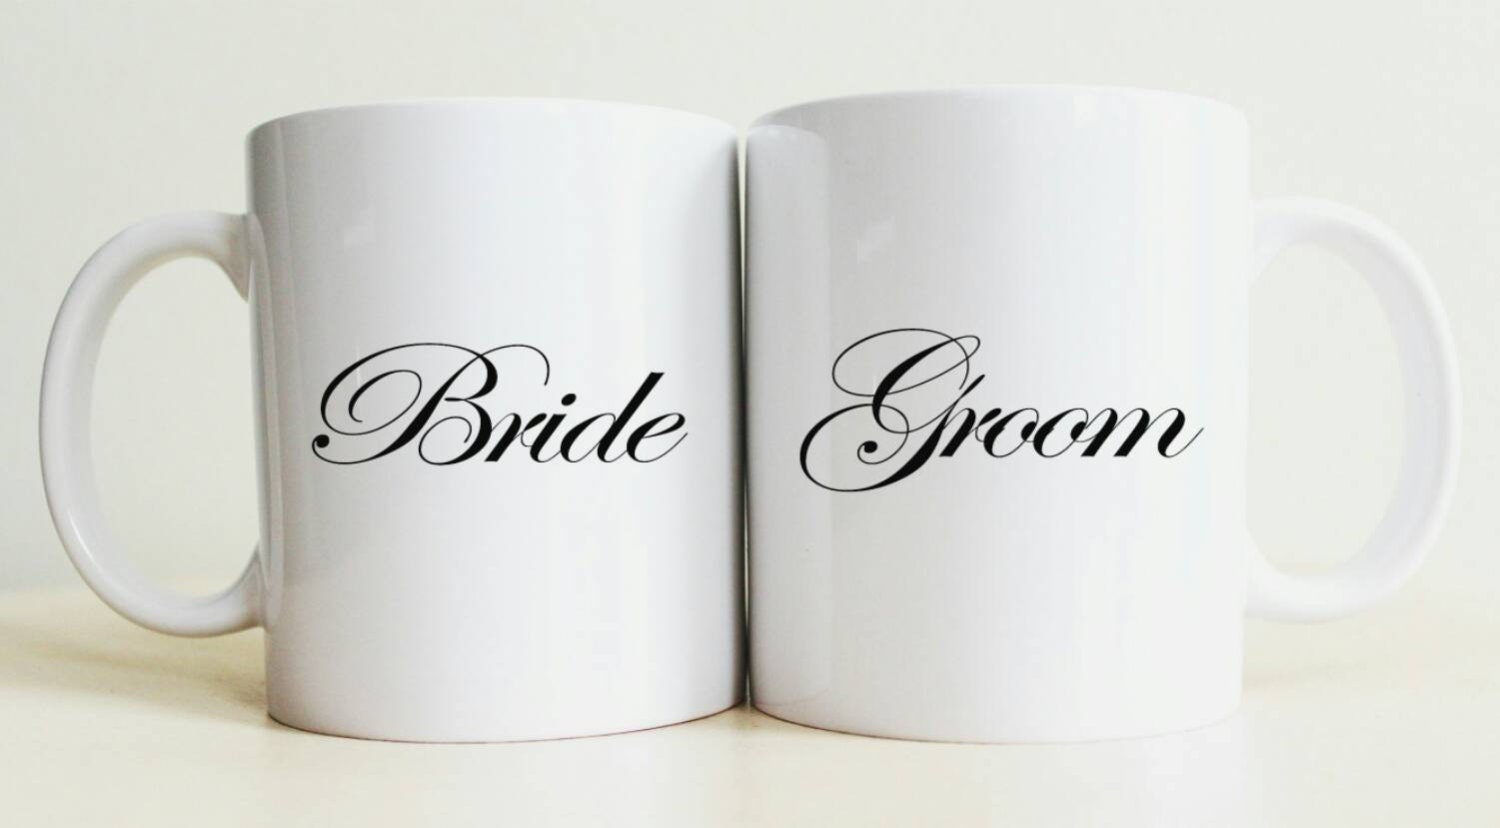 Handmade Wedding Gifts For Bride And Groom: Bride And Groom Mug Set Unique Wedding Gift Custom Bride